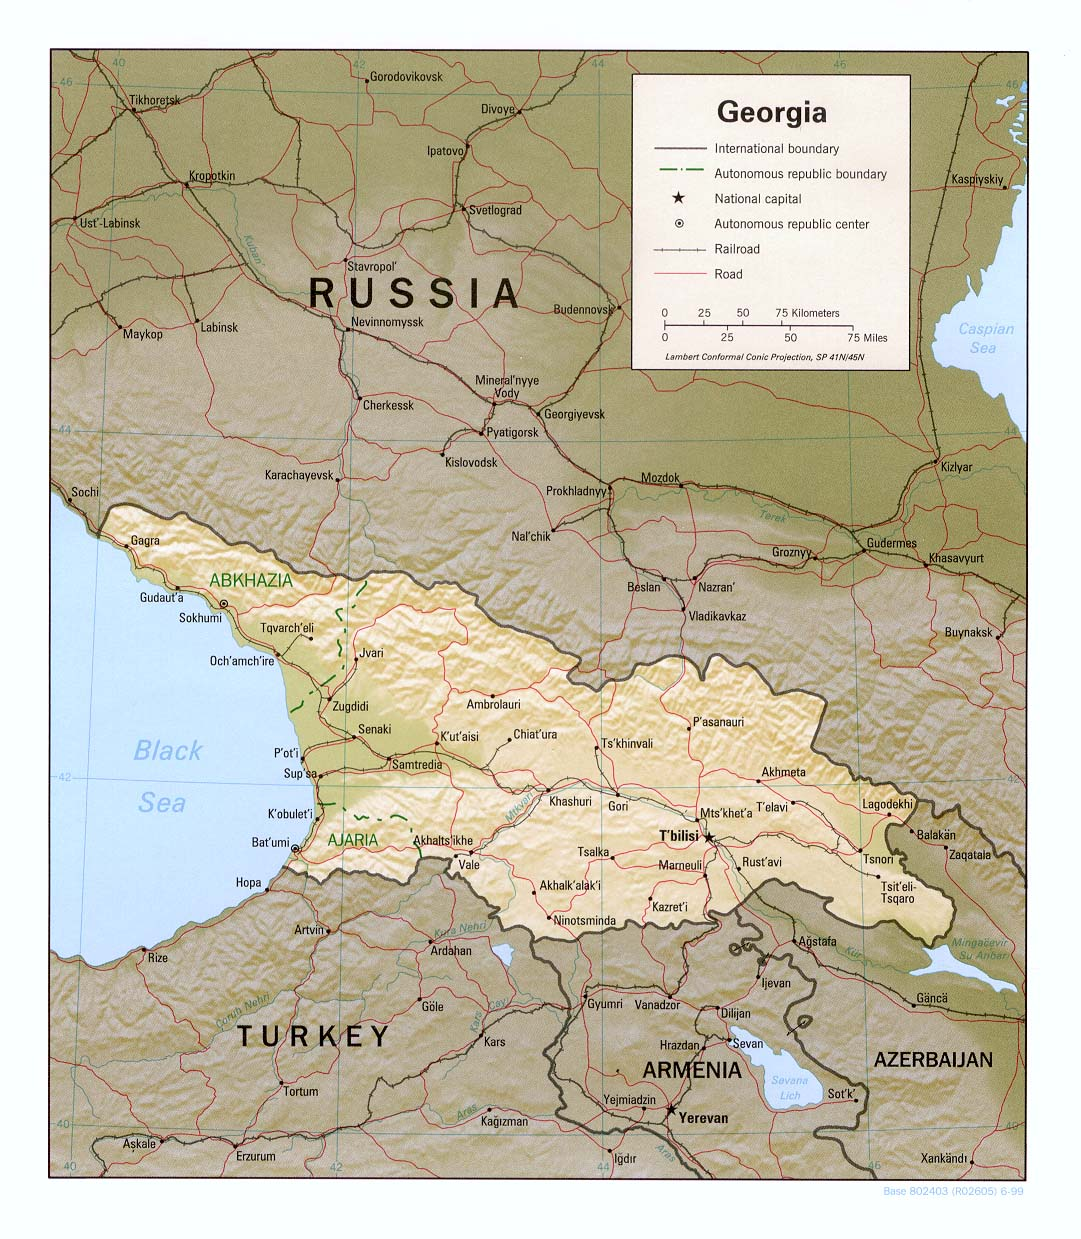 Dmanisi Georgia Map.Maps Of Georgia Map Library Maps Of The World